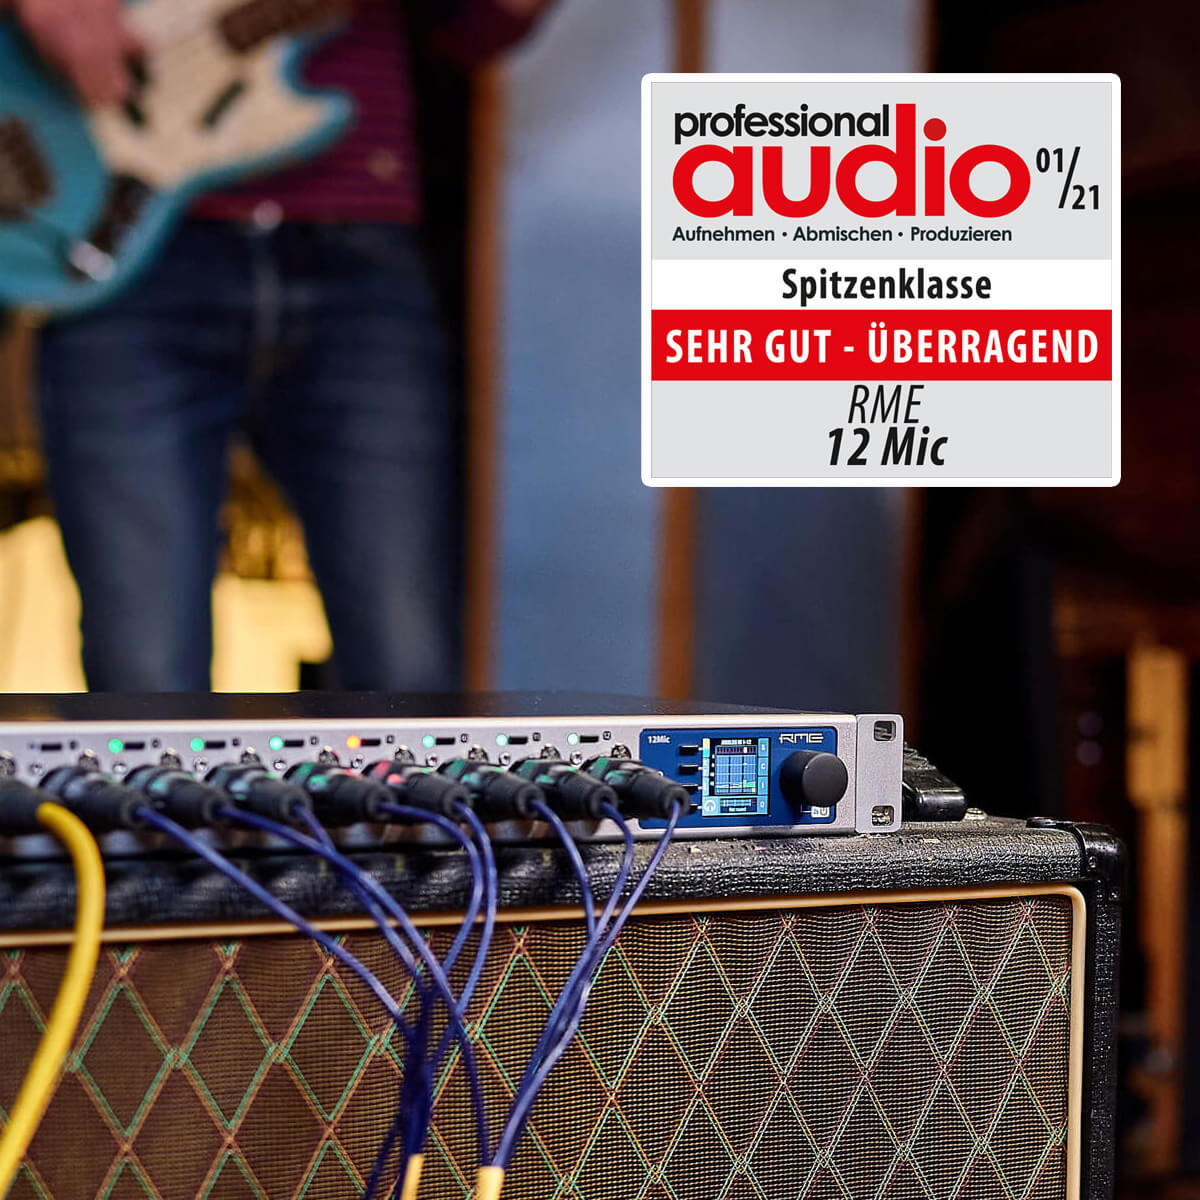 RME Audio 12Mic Best rated